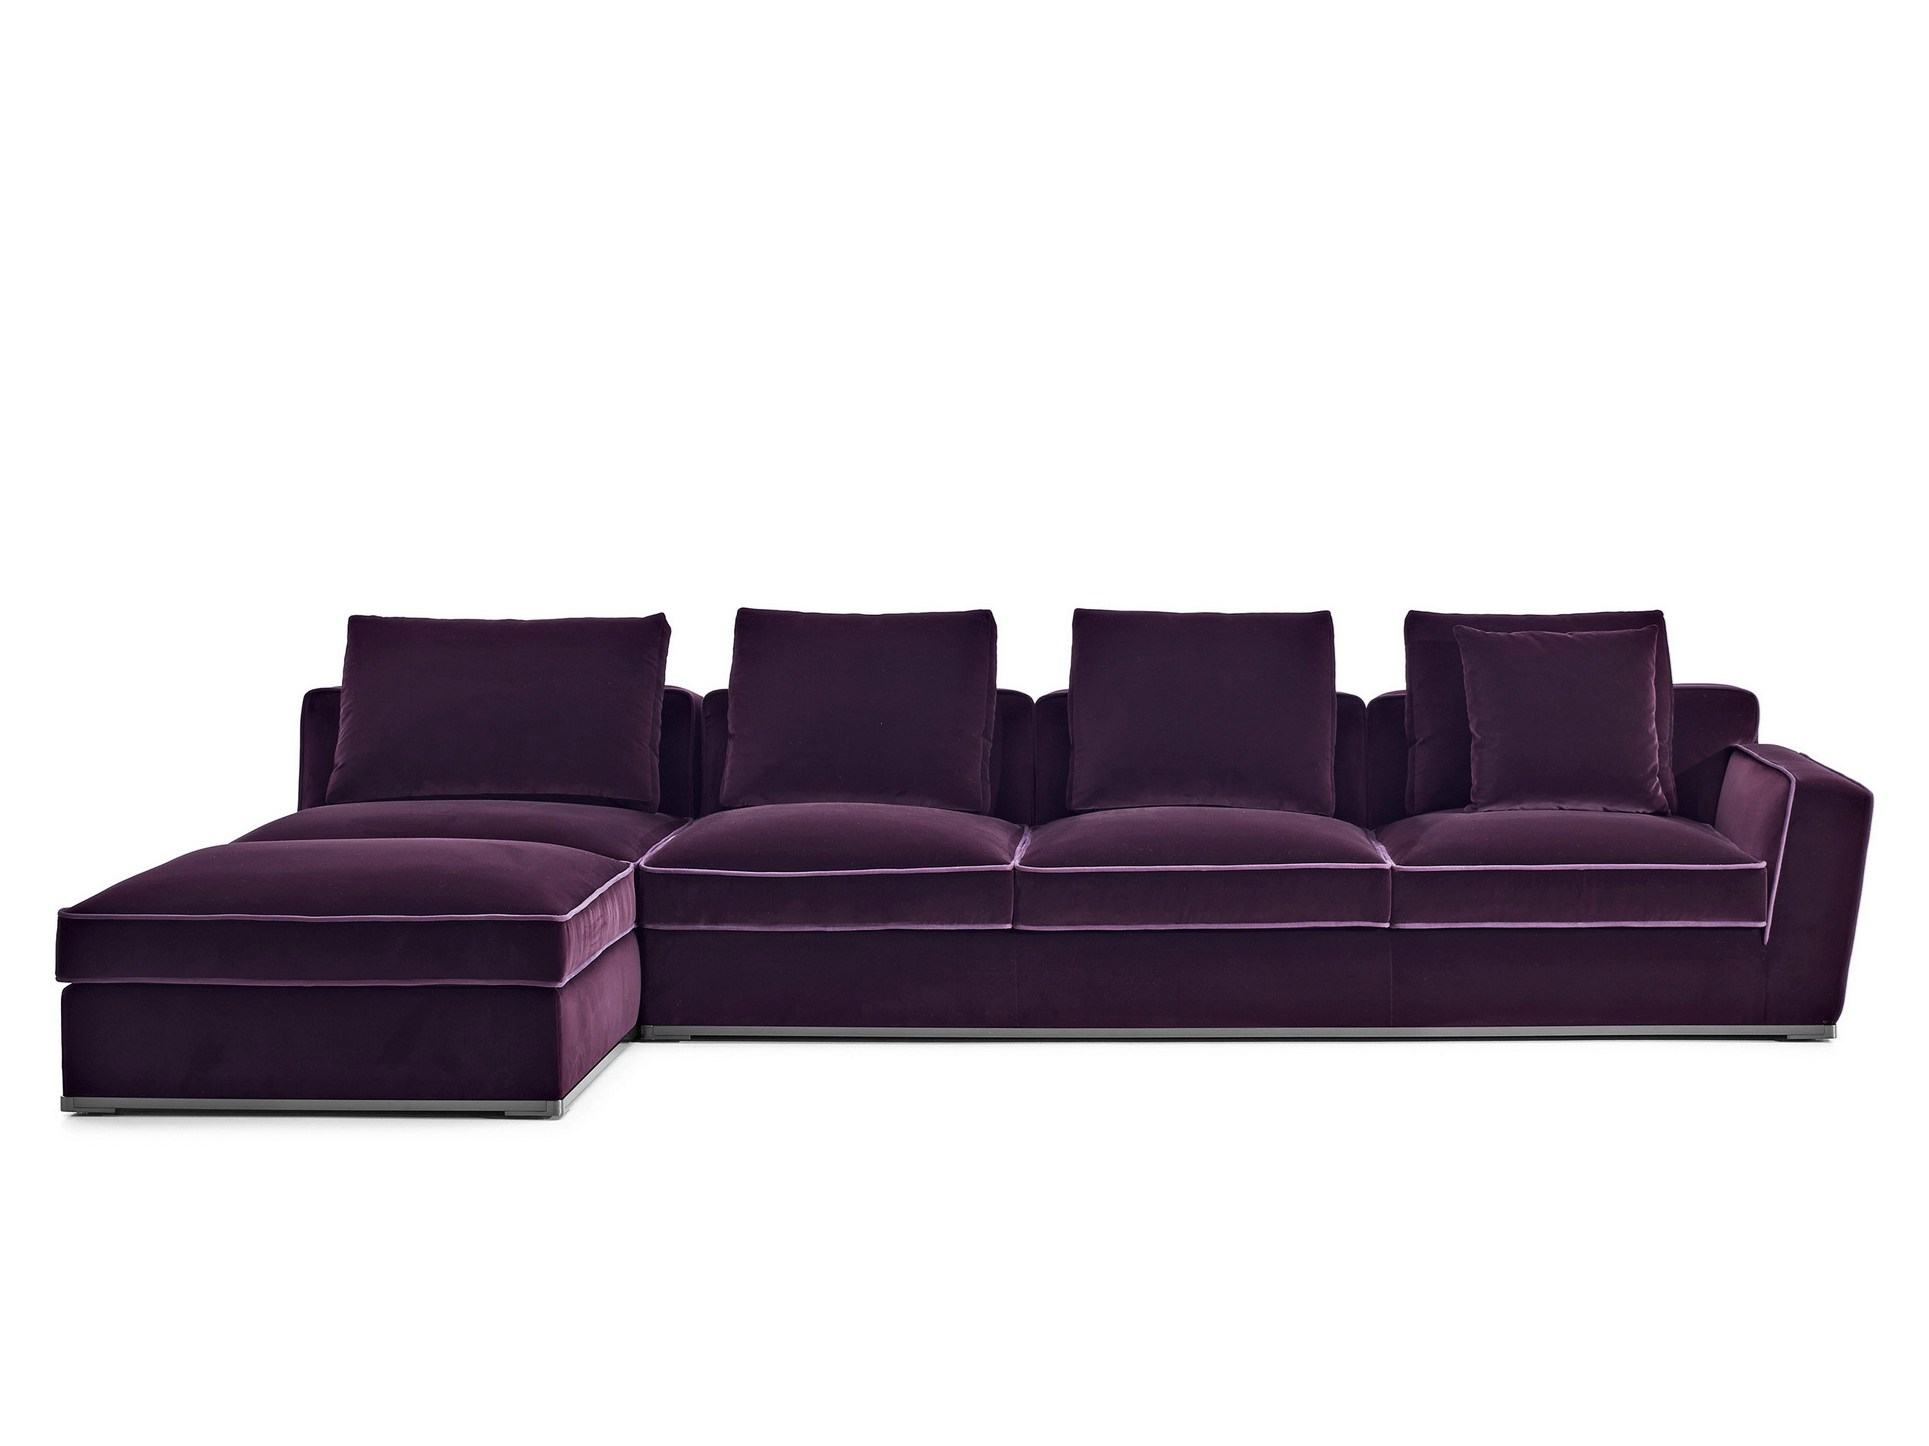 Solatium Modular Sofa By Antonio Citterio For Maxalto